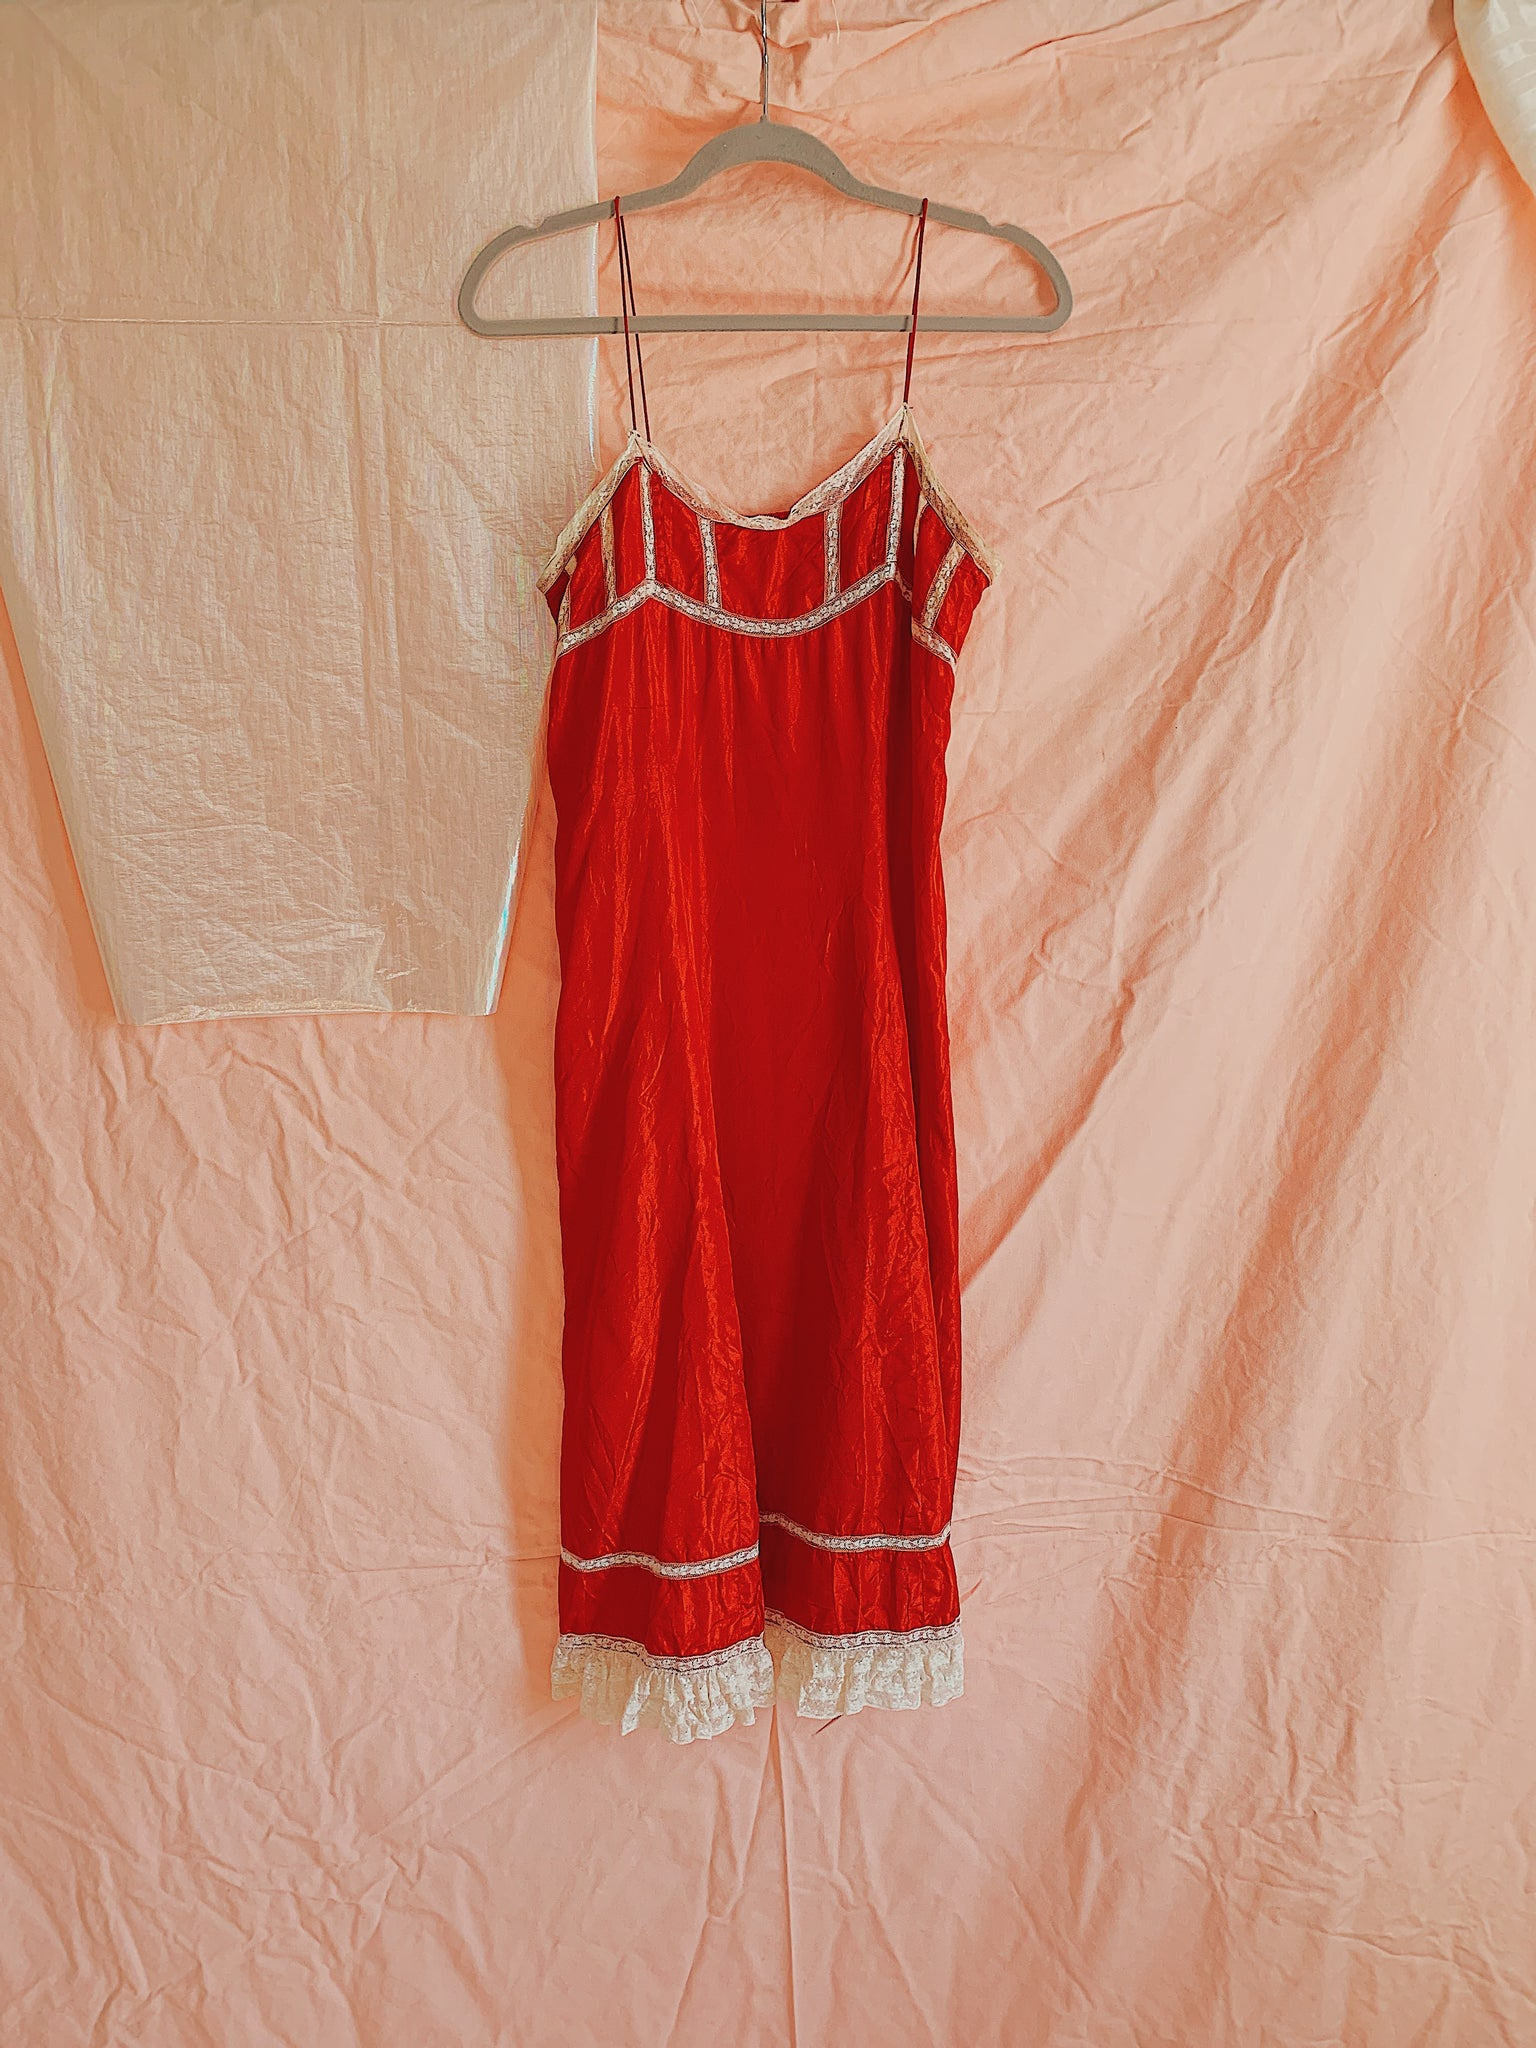 Parsifal Red Vintage Slip Dress